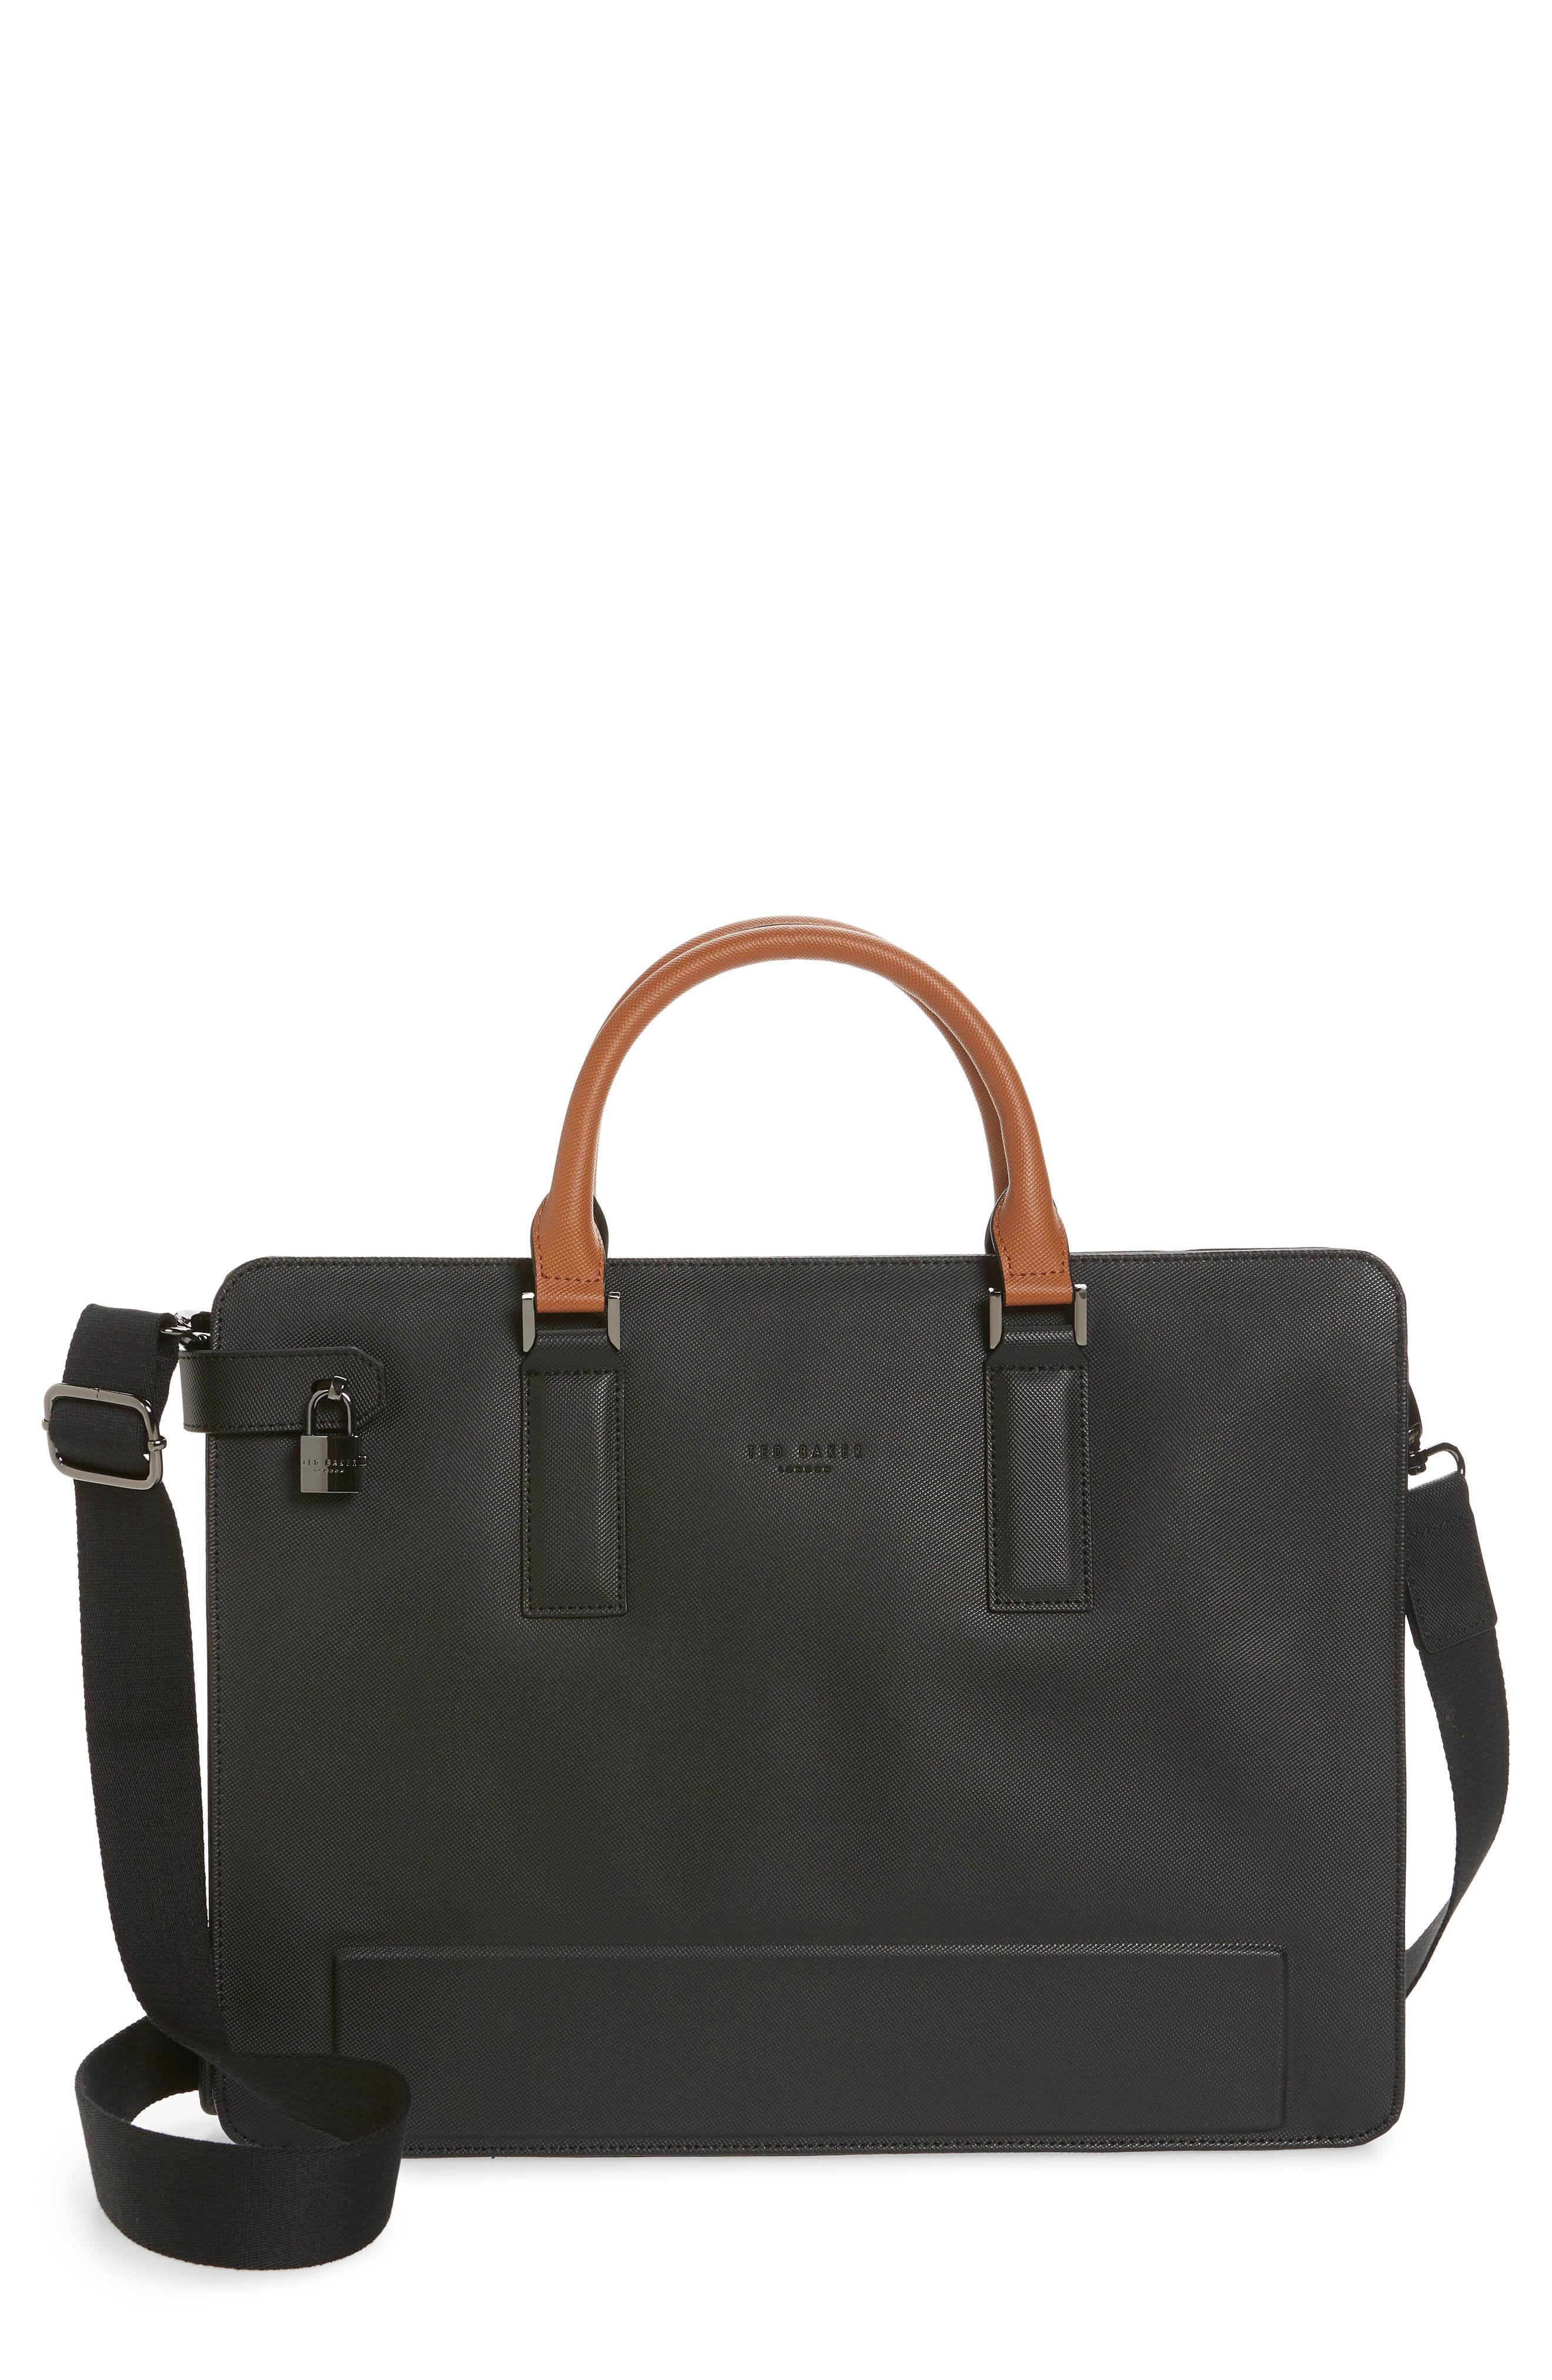 TED BAKER LONDON Stark Leather Briefcase, Main, color, BLACK